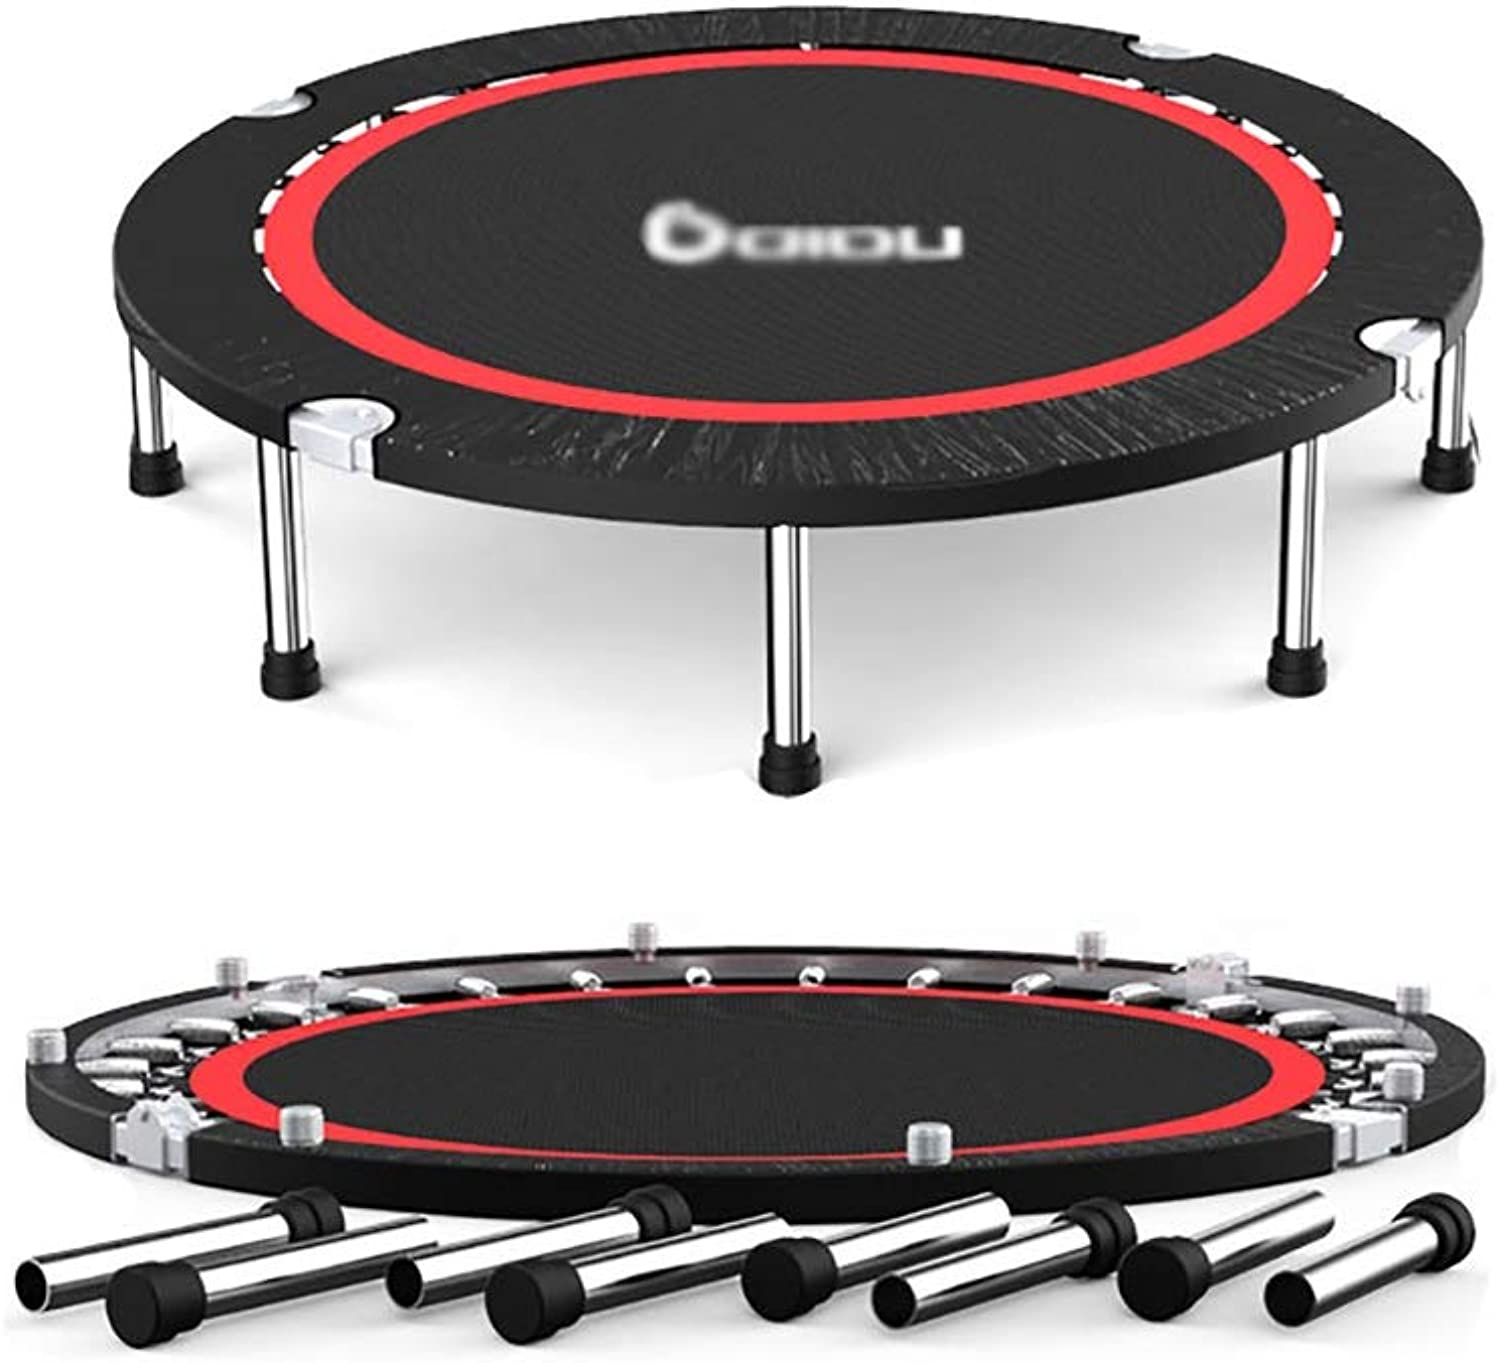 Trampolines 50'' Extra Large Fitness Trampolines with Safety Jump Mat, 350kg Load, Adults Black BounceR Equipment for Cardio Training